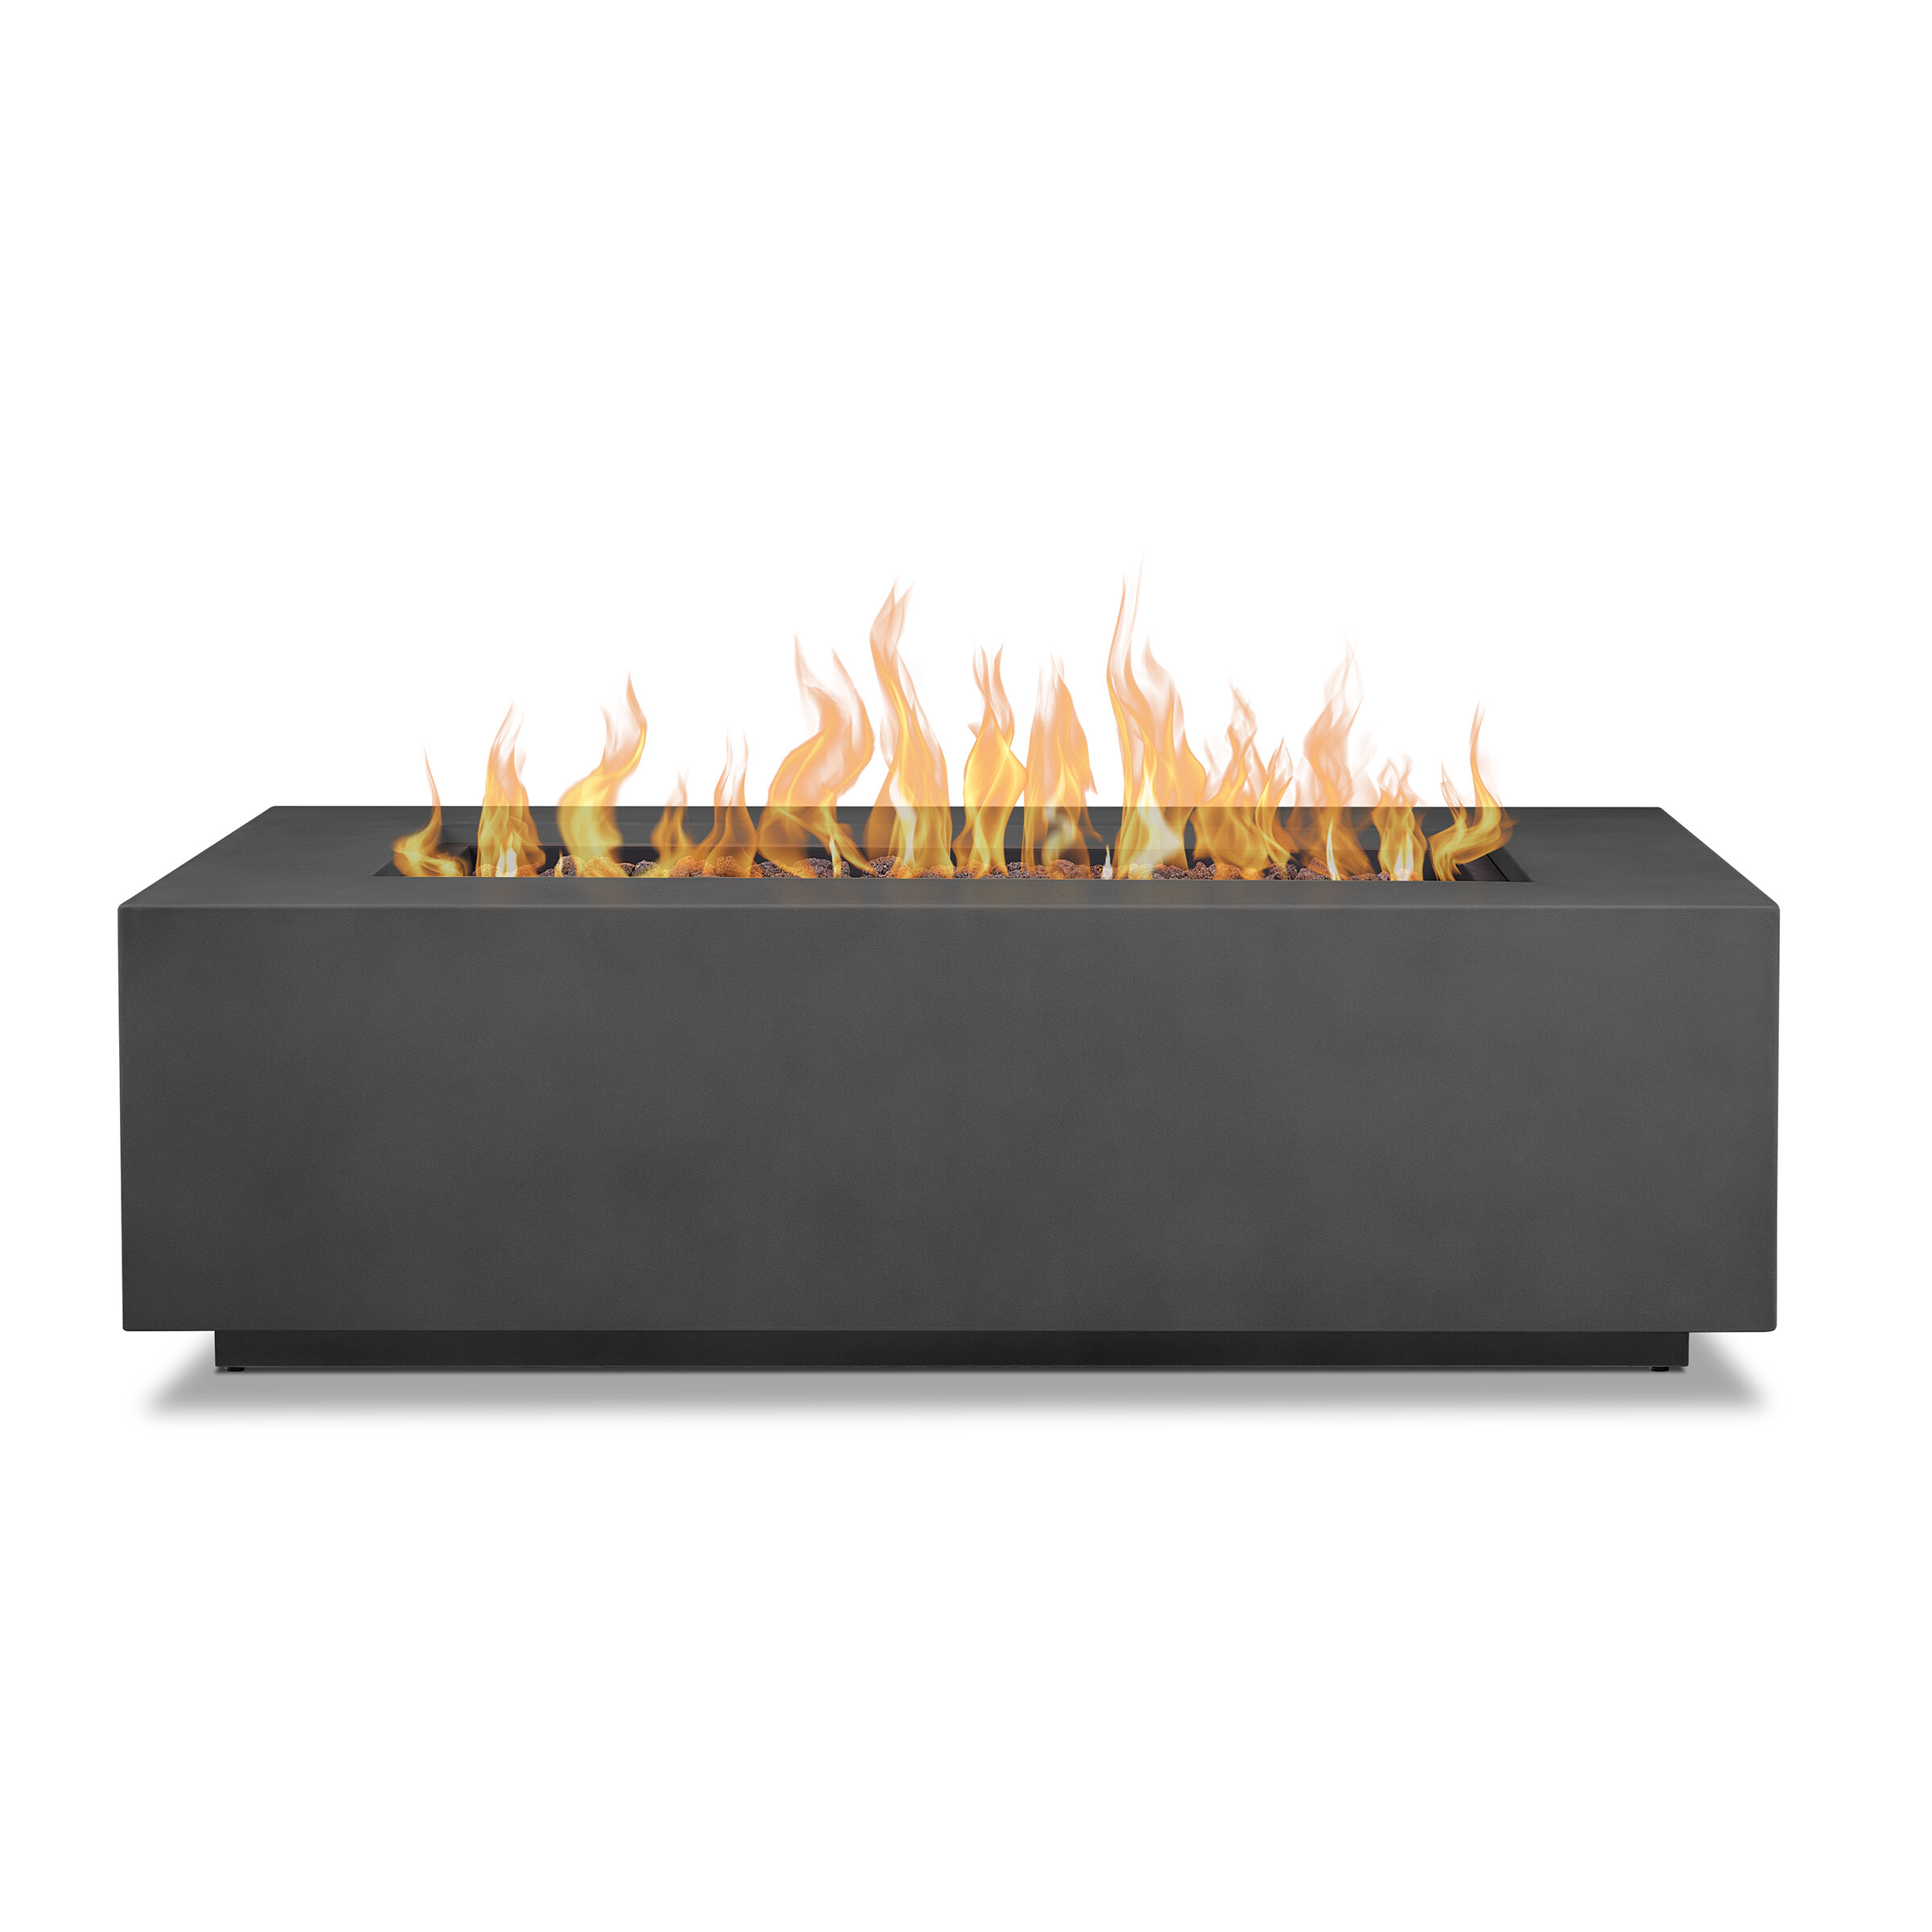 Real Flame Aegean Steel Propane Natural Gas Fire Pit Table Reviews Wayfair